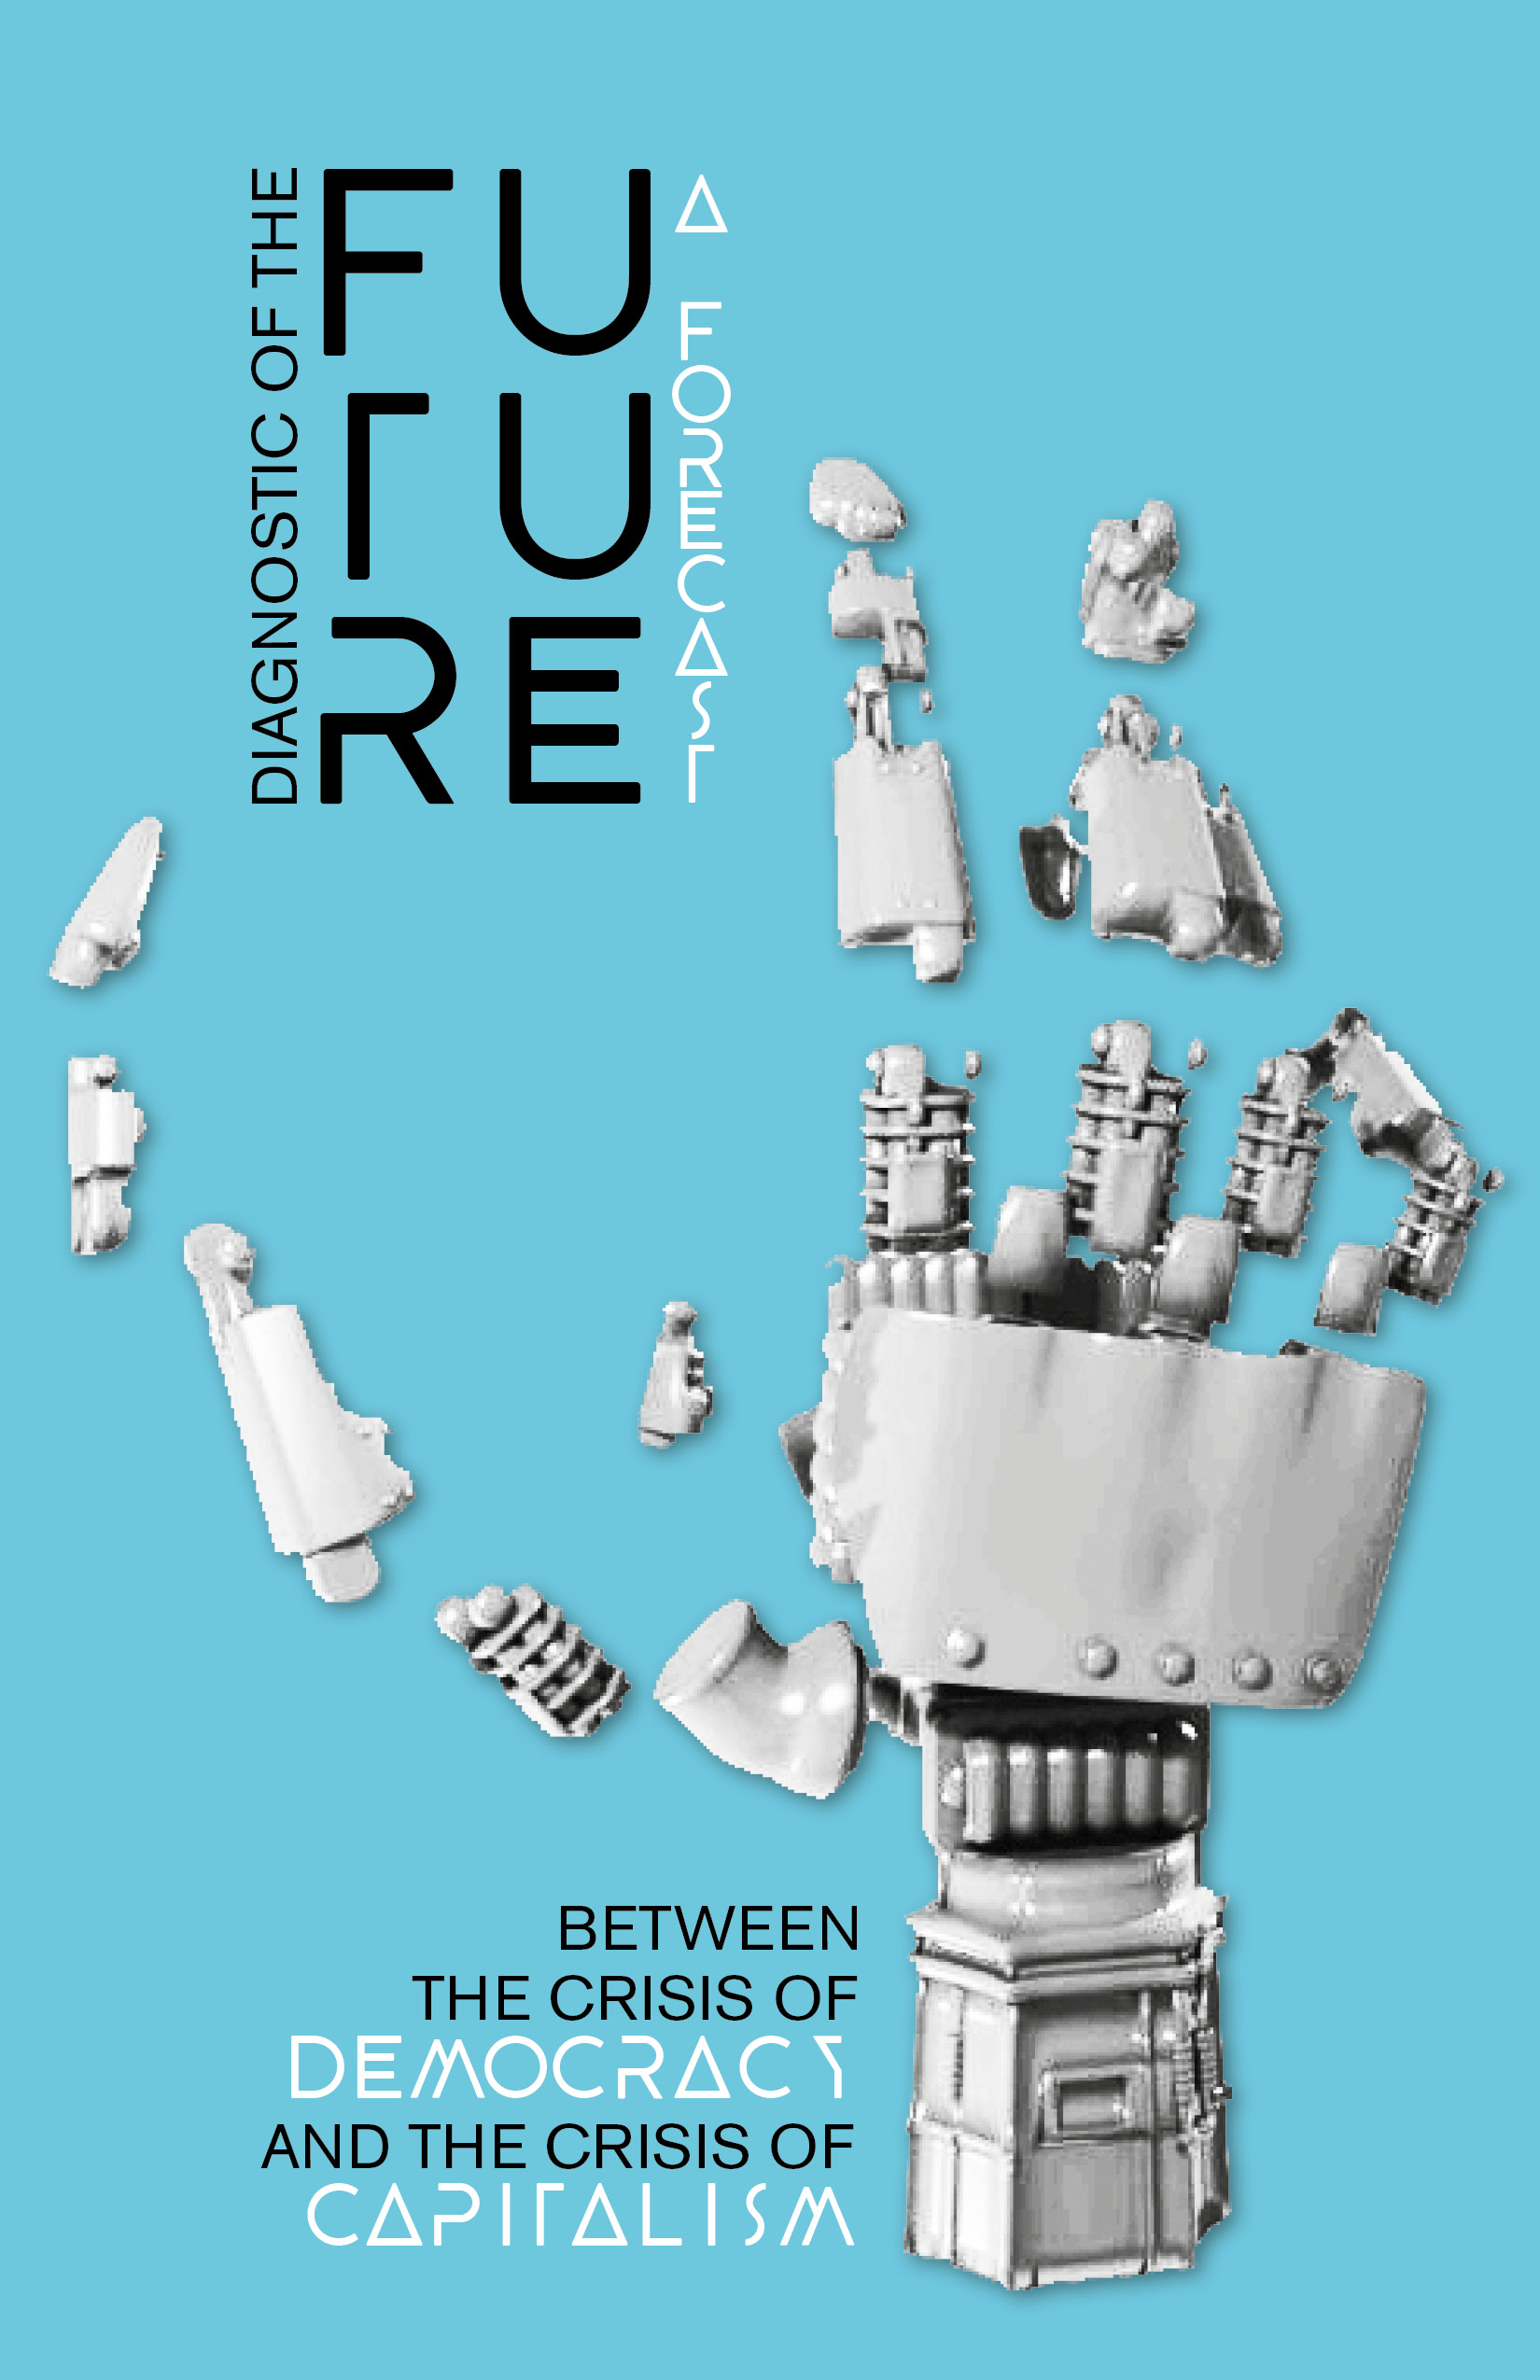 Photo of 'Diagnostic of the Future' front cover